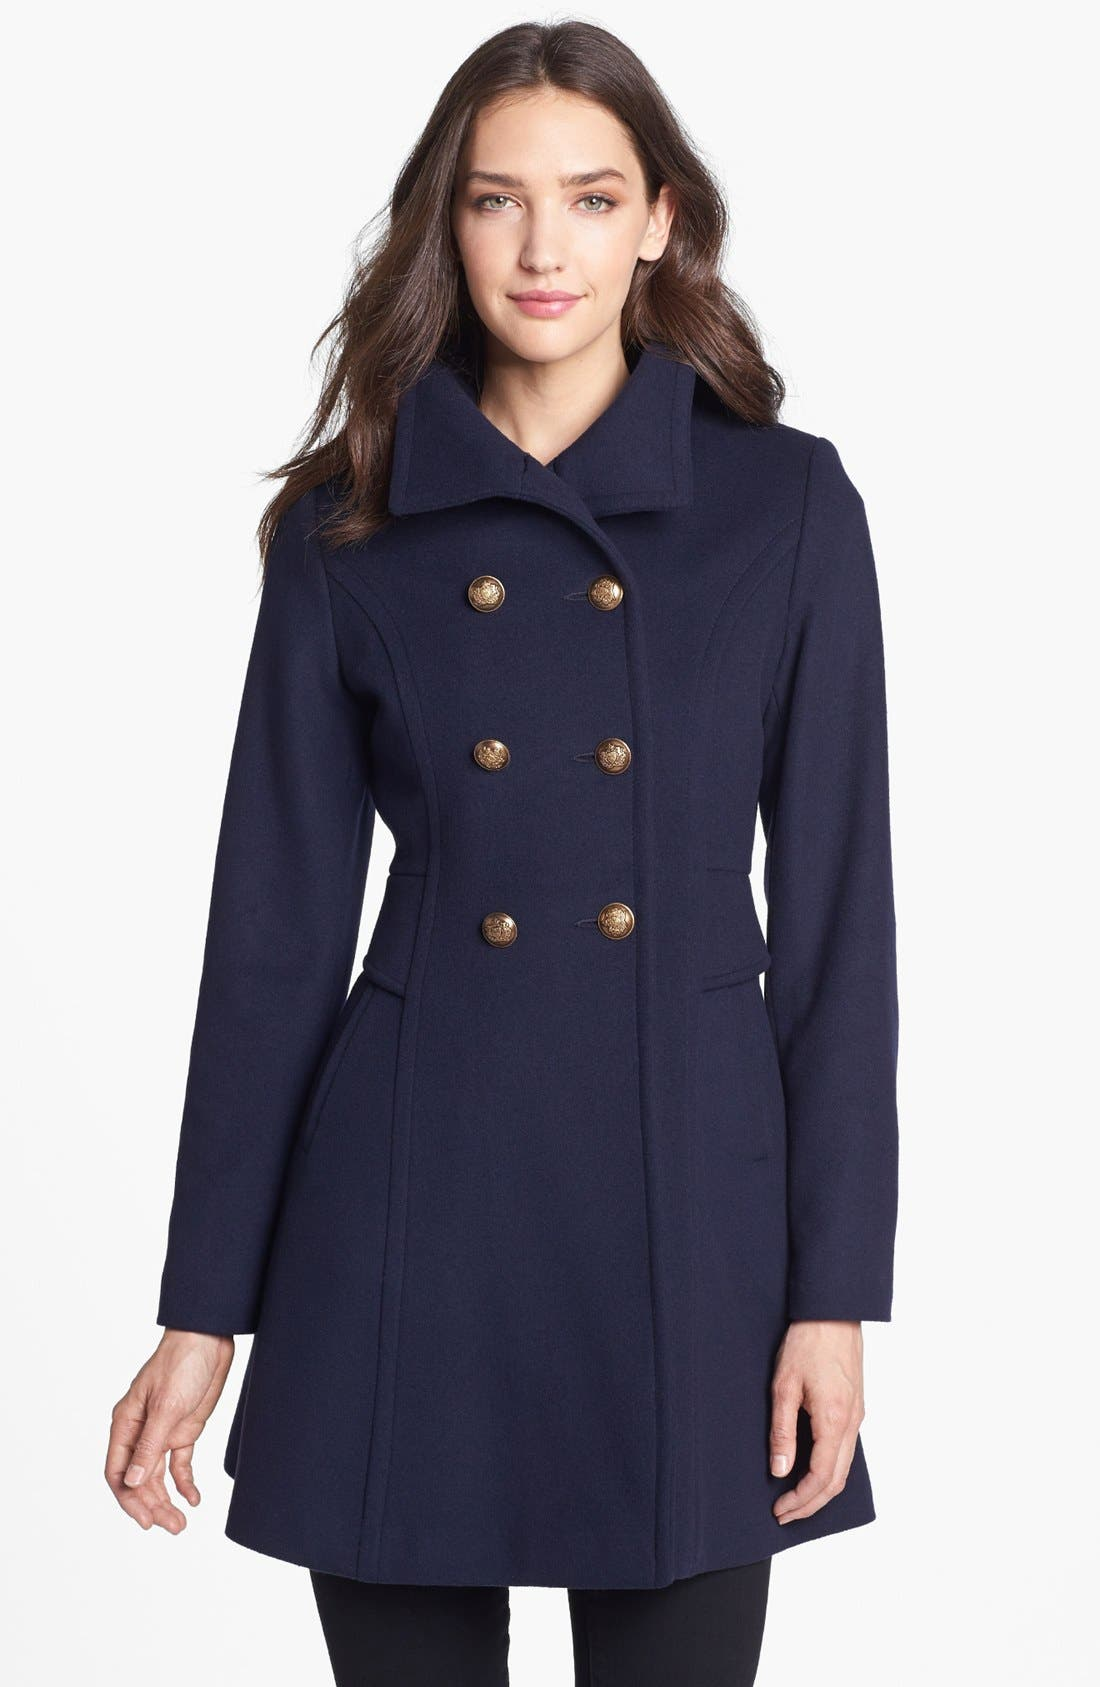 Main Image - Trina Turk Lambswool & Cashmere Officer's Coat (Petite)